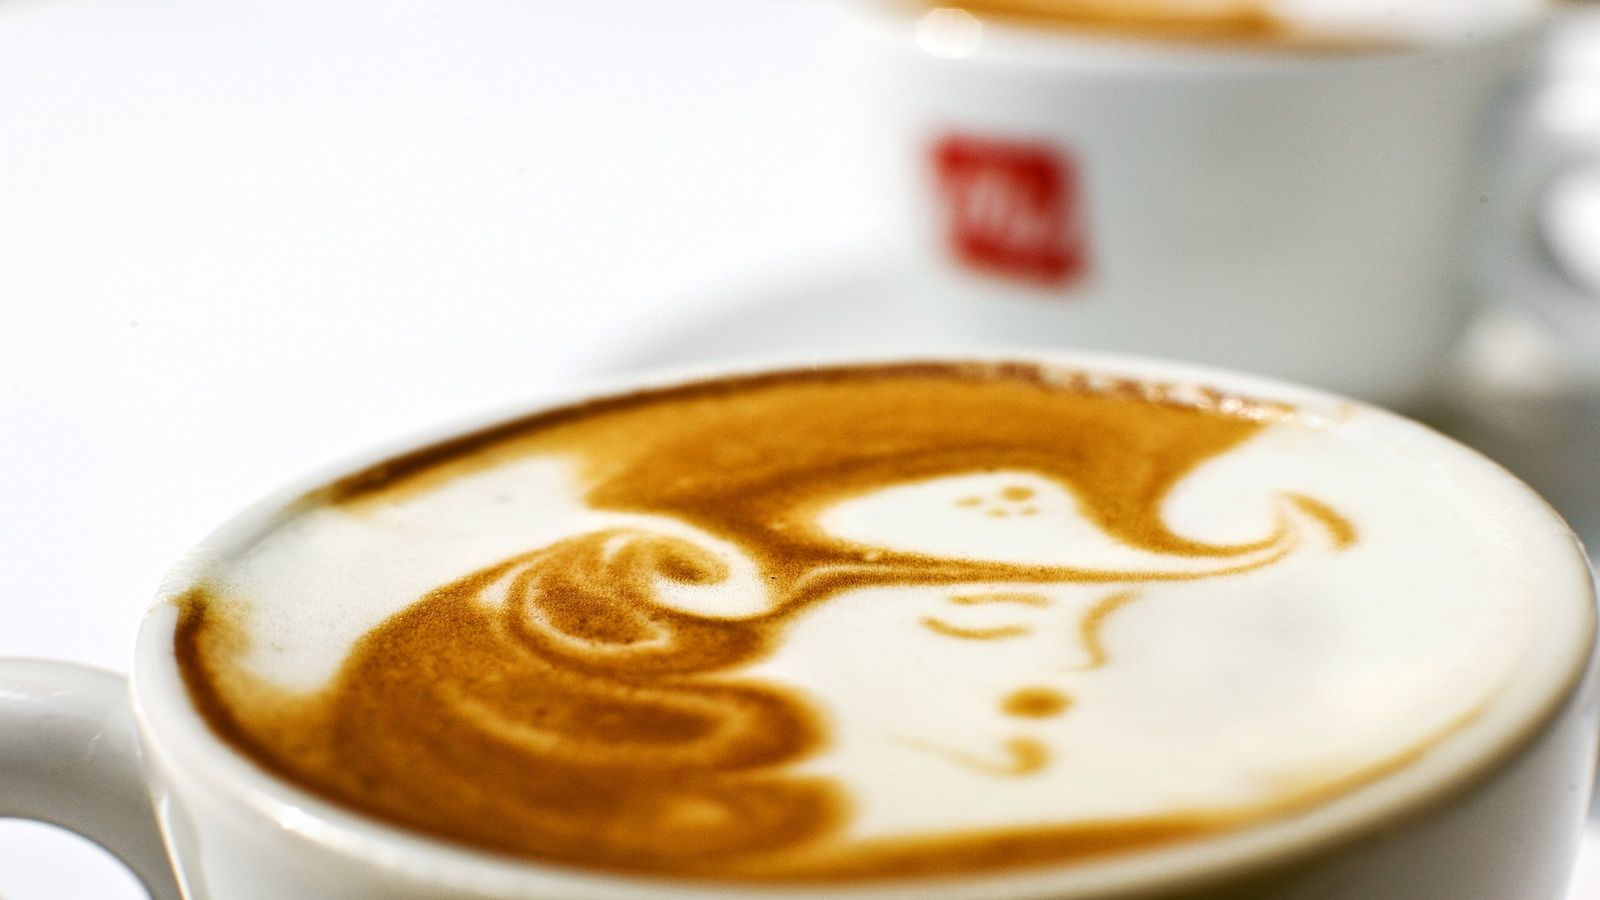 Share the Art of Coffee